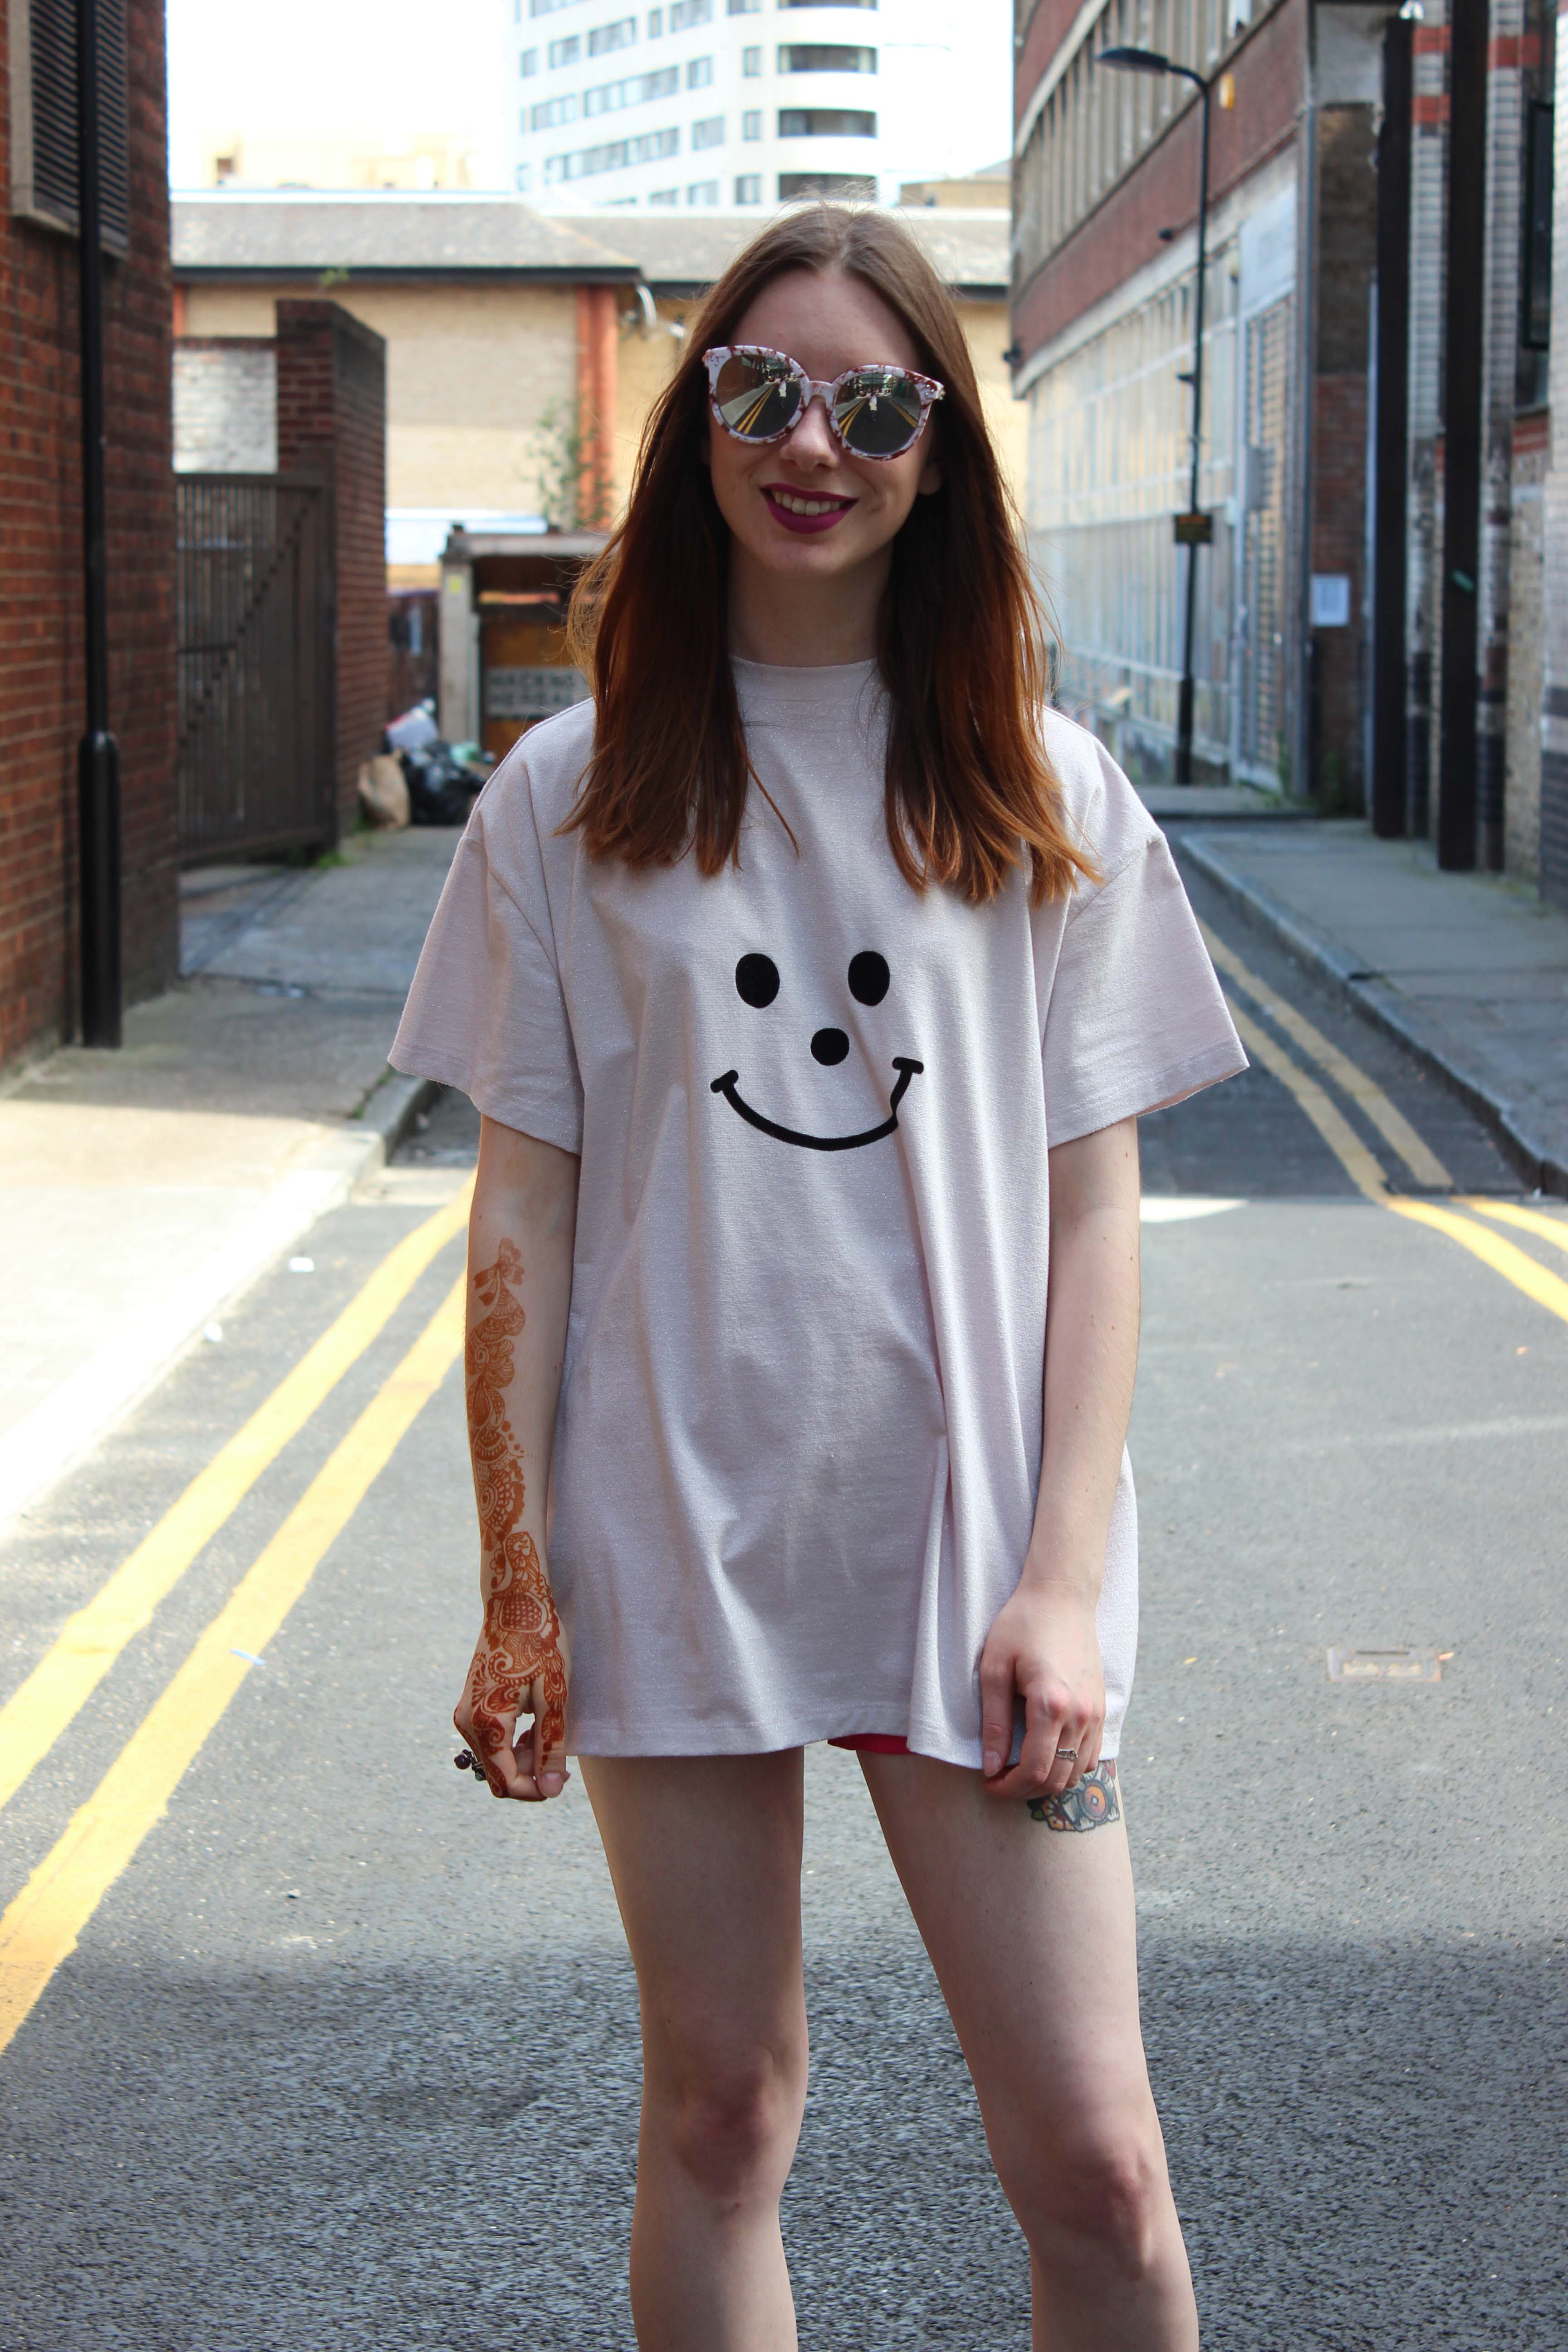 Lazy Oaf glittter smiley face oversized t shirt